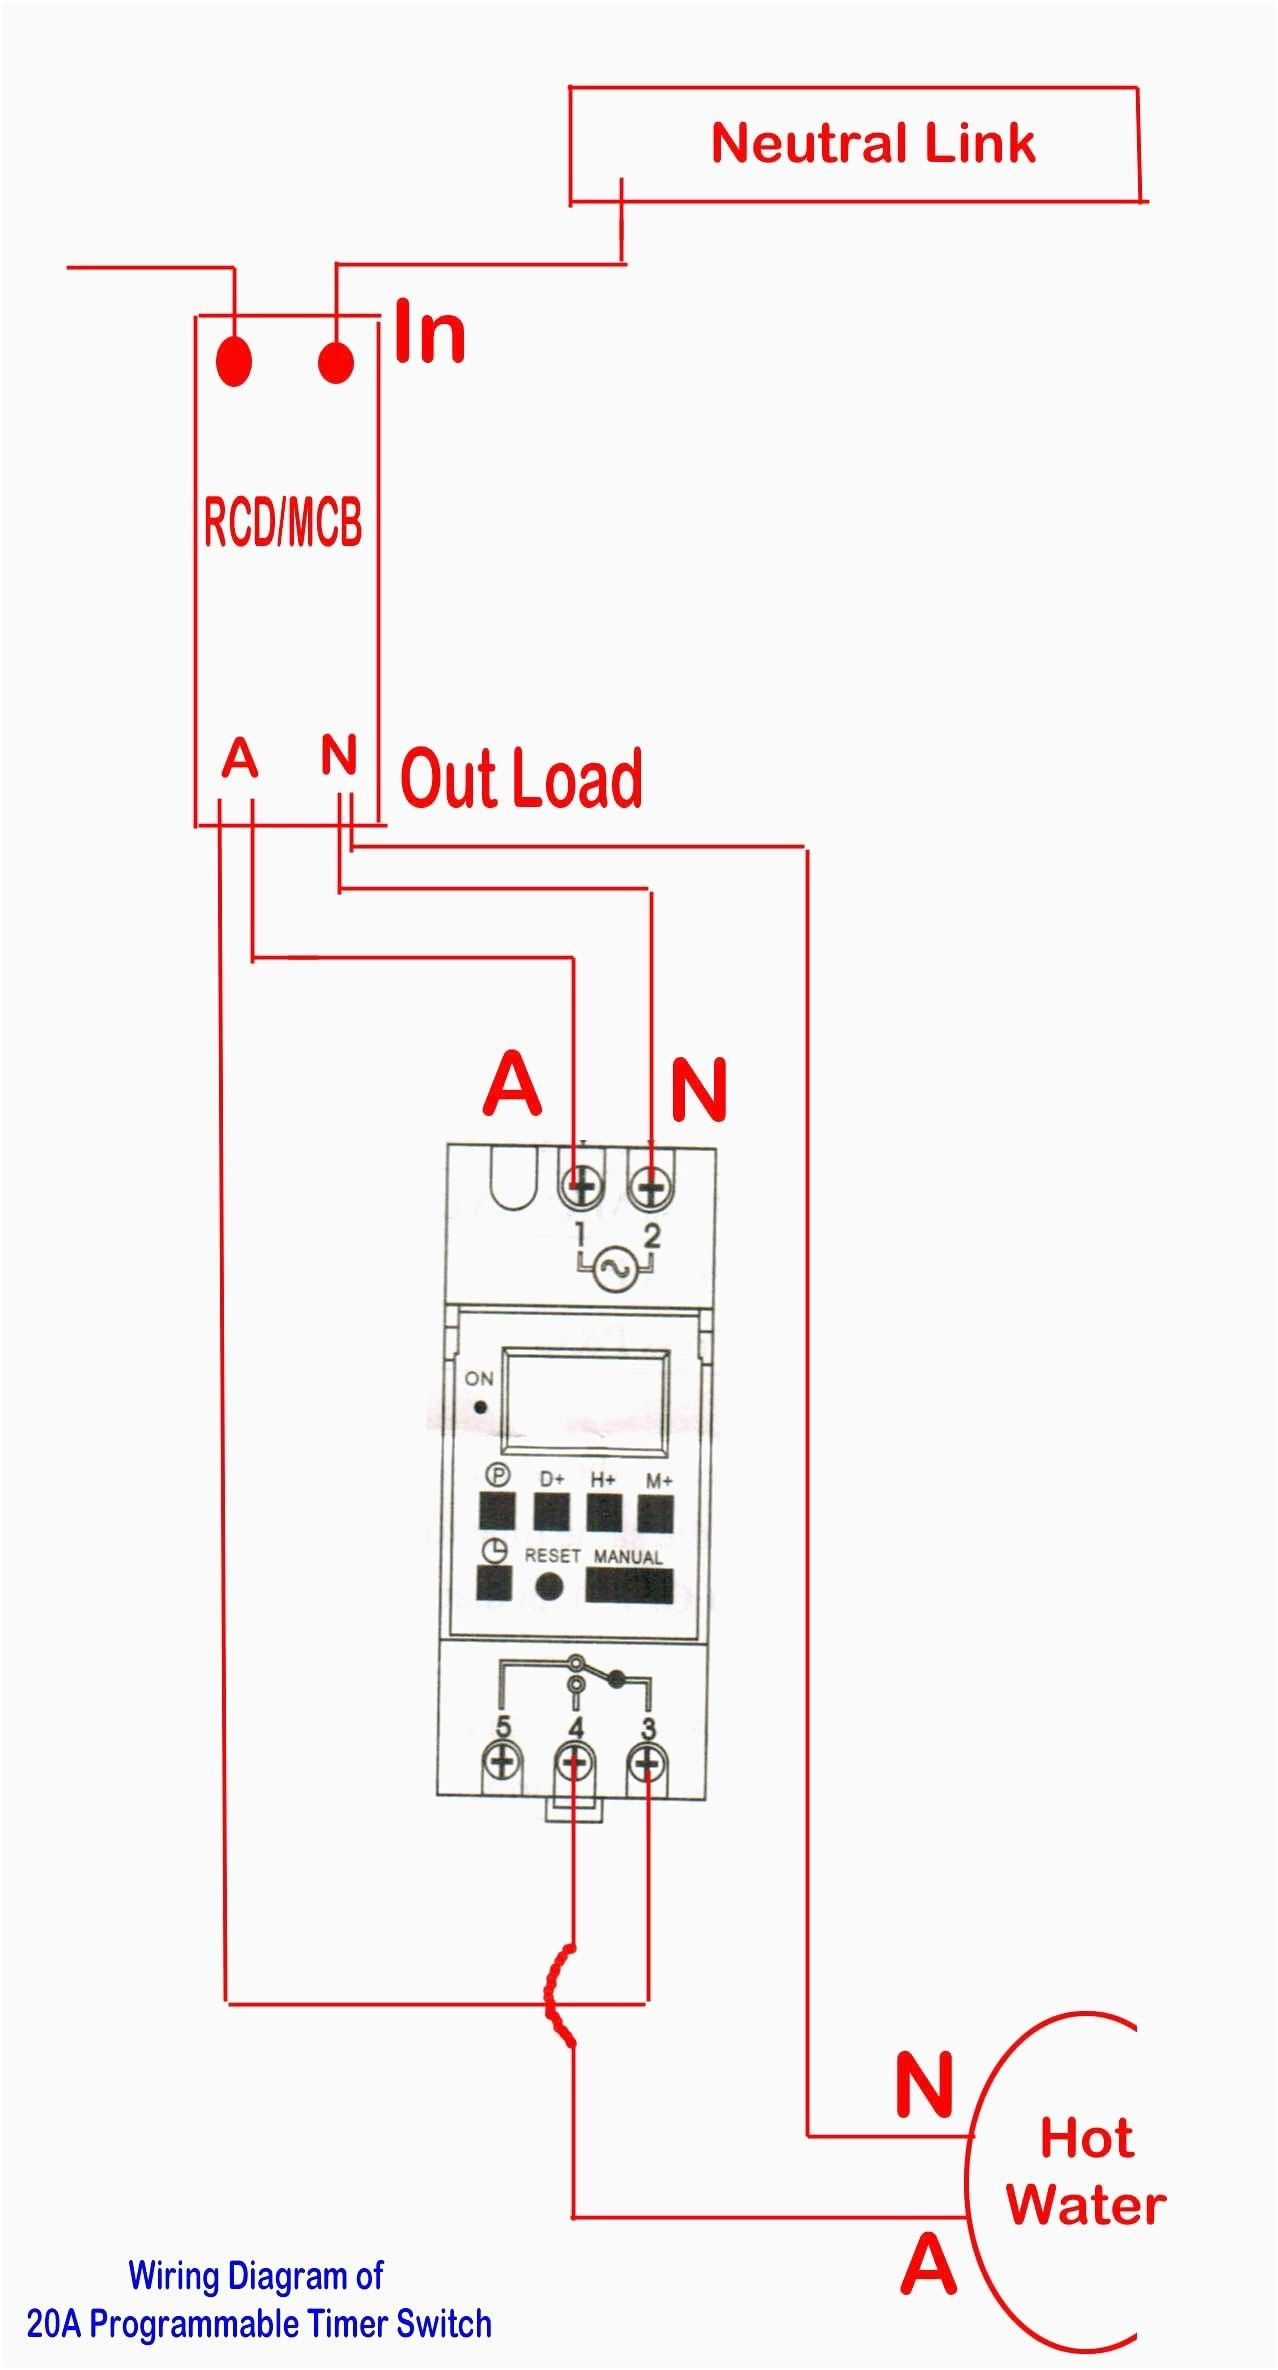 New Wiring Diagram Hager Contactor diagramsample